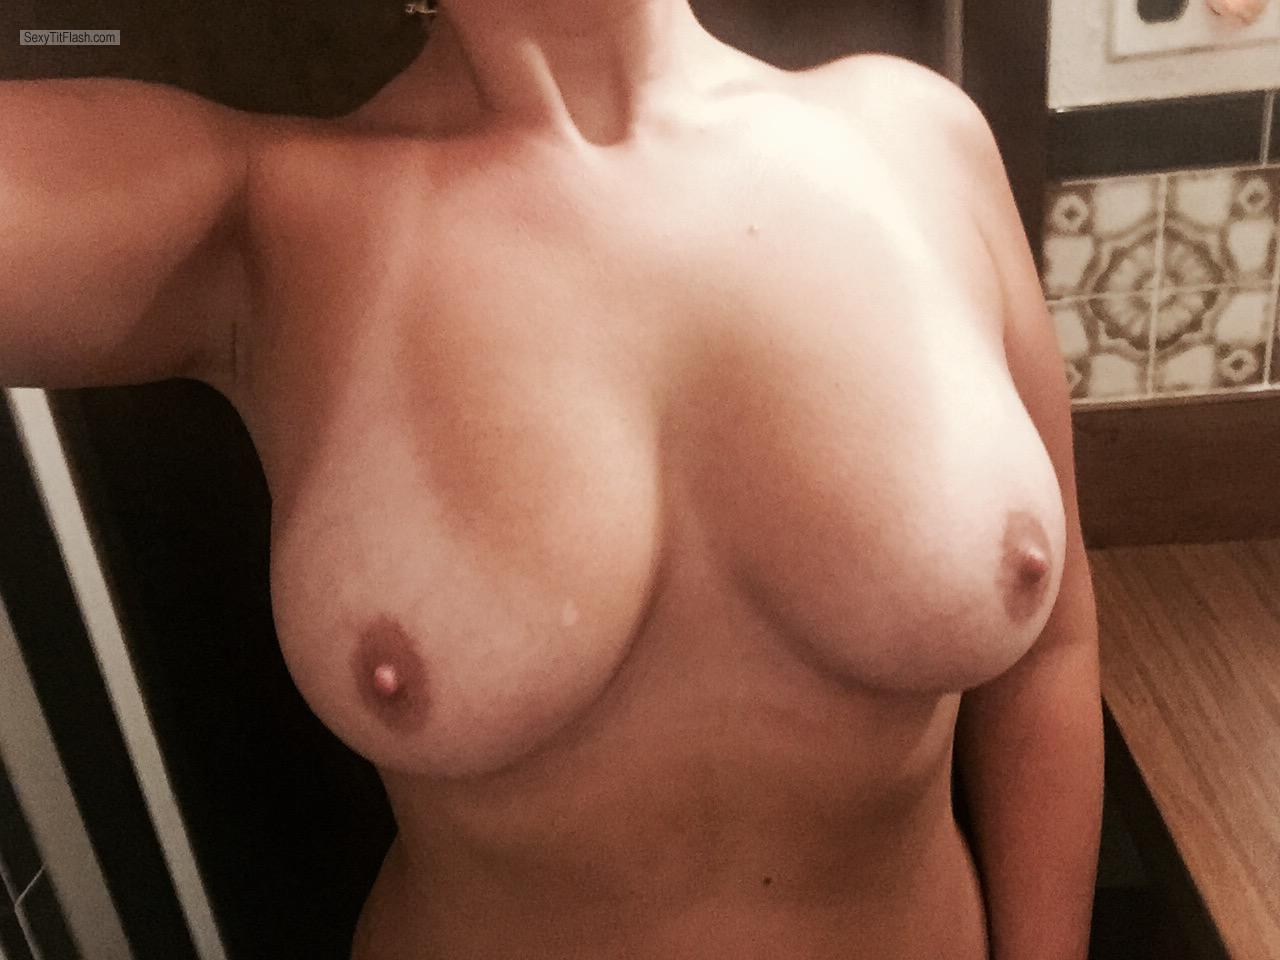 My Big Tits Selfie by Smiley Girl